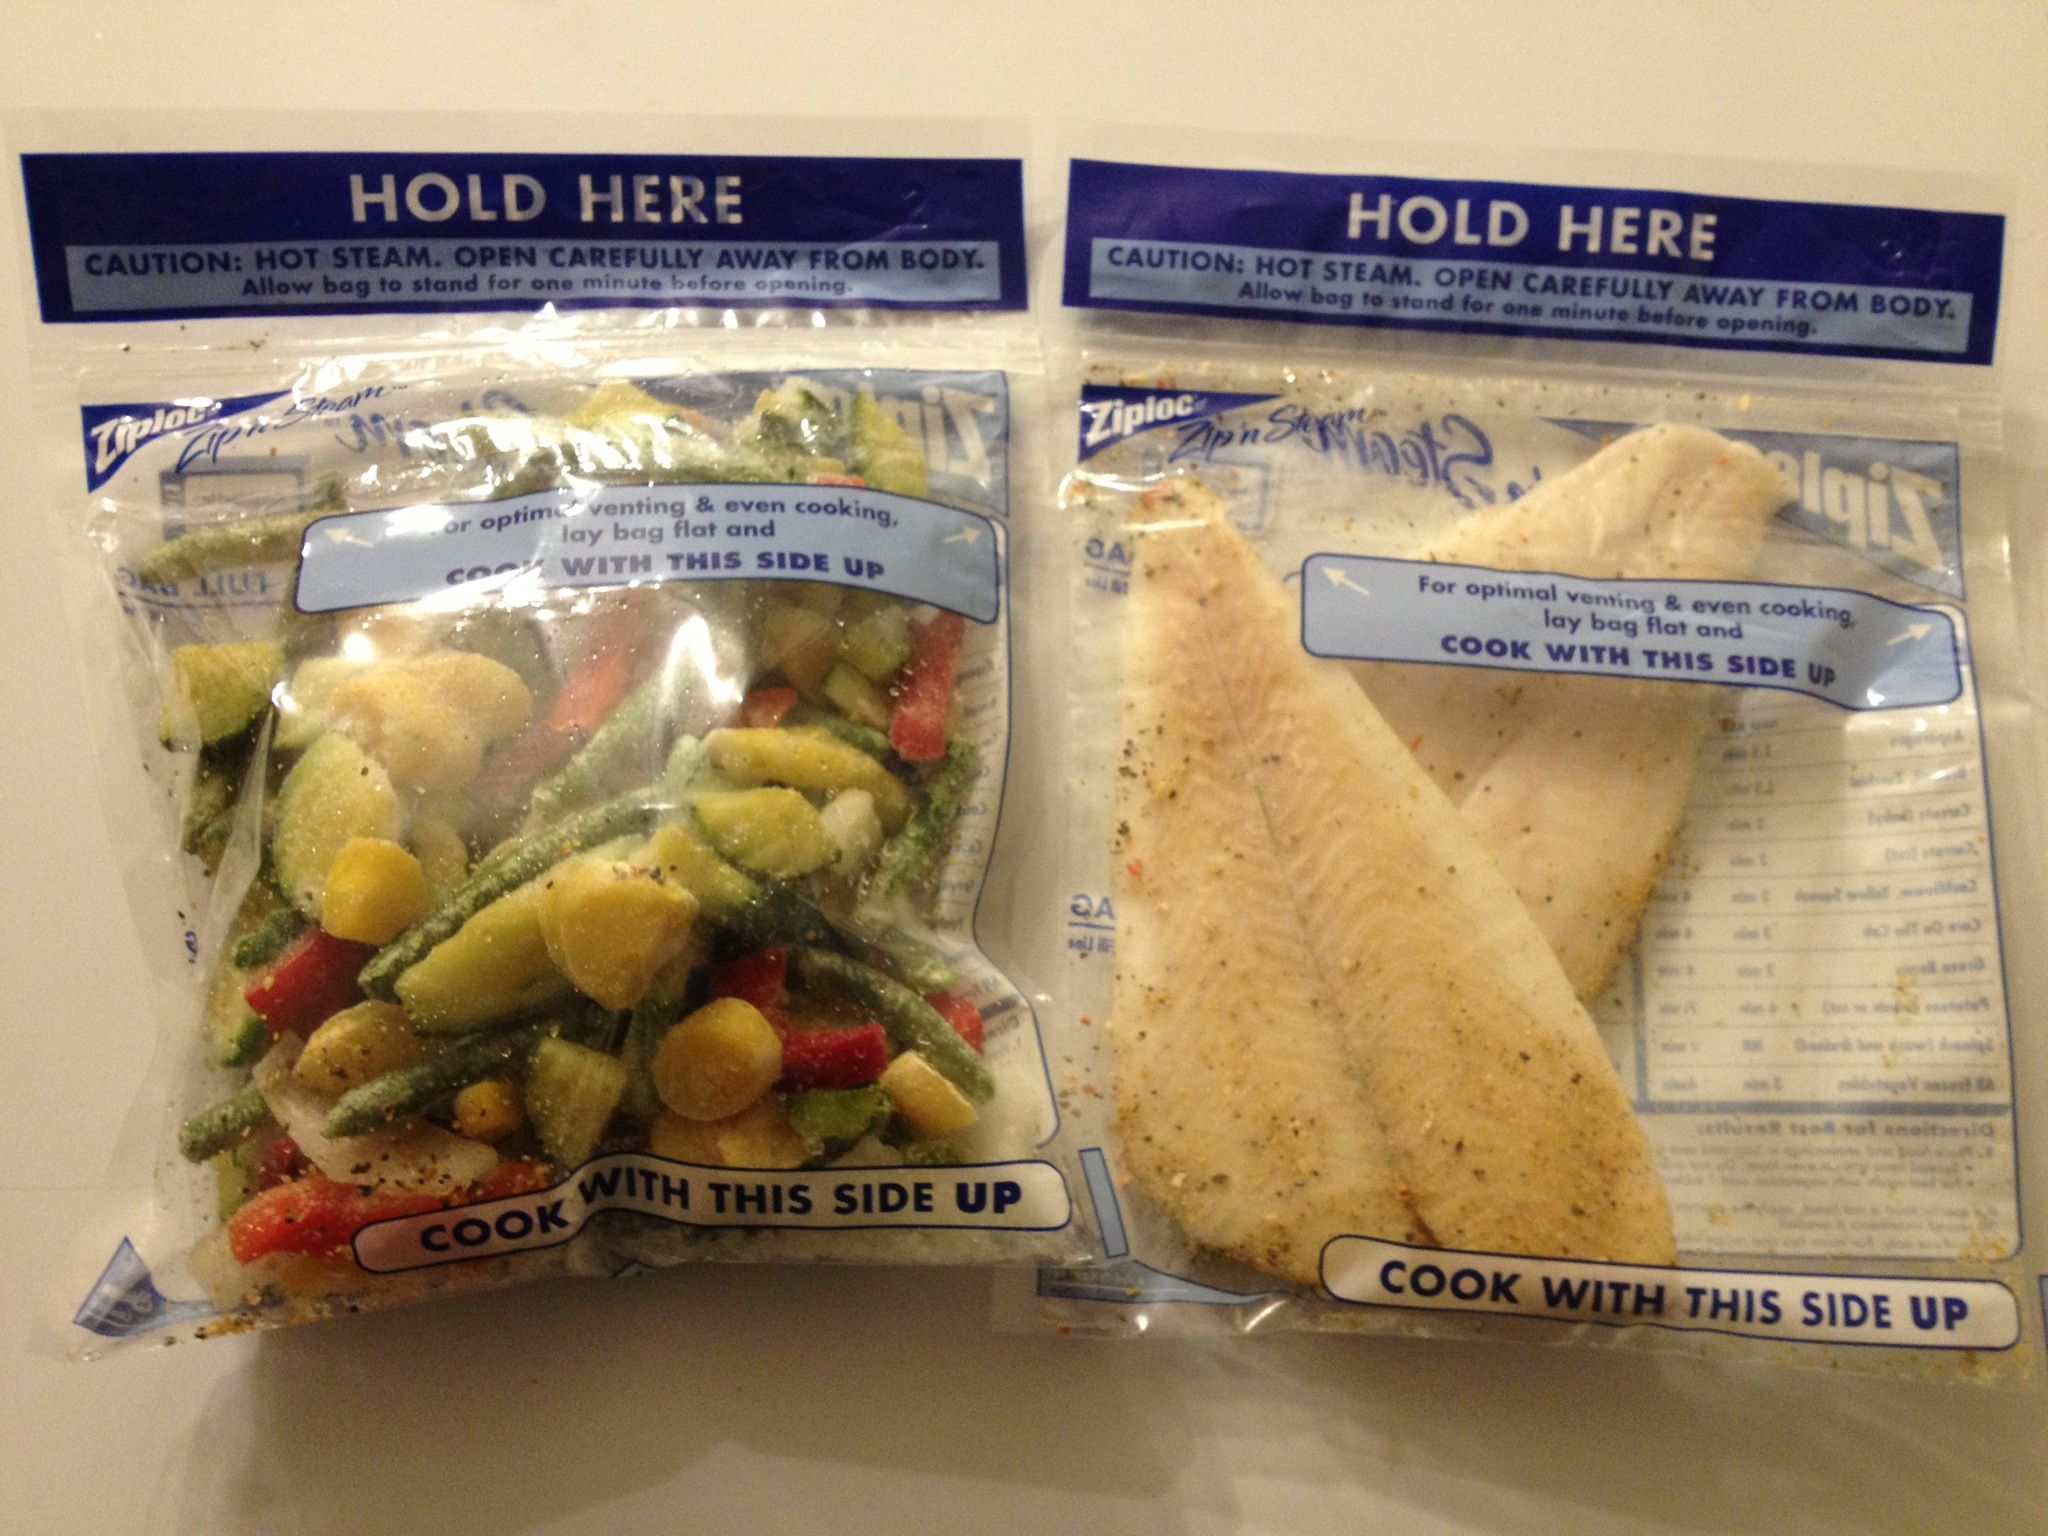 Good For Fish Veggies And En Place Desired Meat Or In The Bag Frozen Fresh Along With Seasoningicrowave